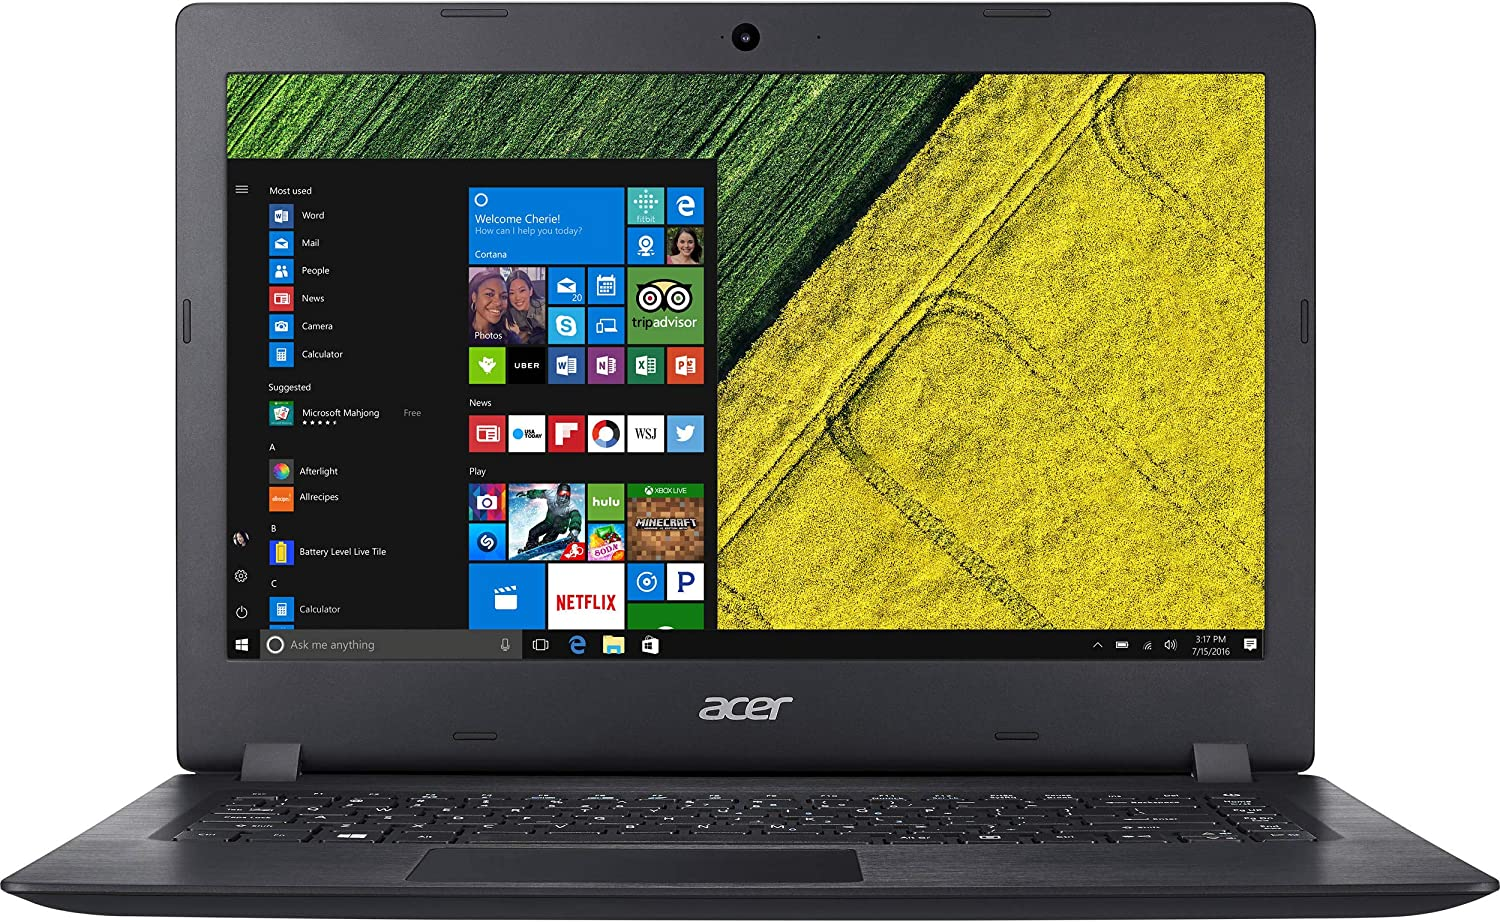 "Acer Aspire 14"" FHD Notebook, Intel Celeron N4000, 4GB DDR4, 64GB SSD, Intel UHD Graphics 600, Windows 10 Home in S Mode (Renewed)"